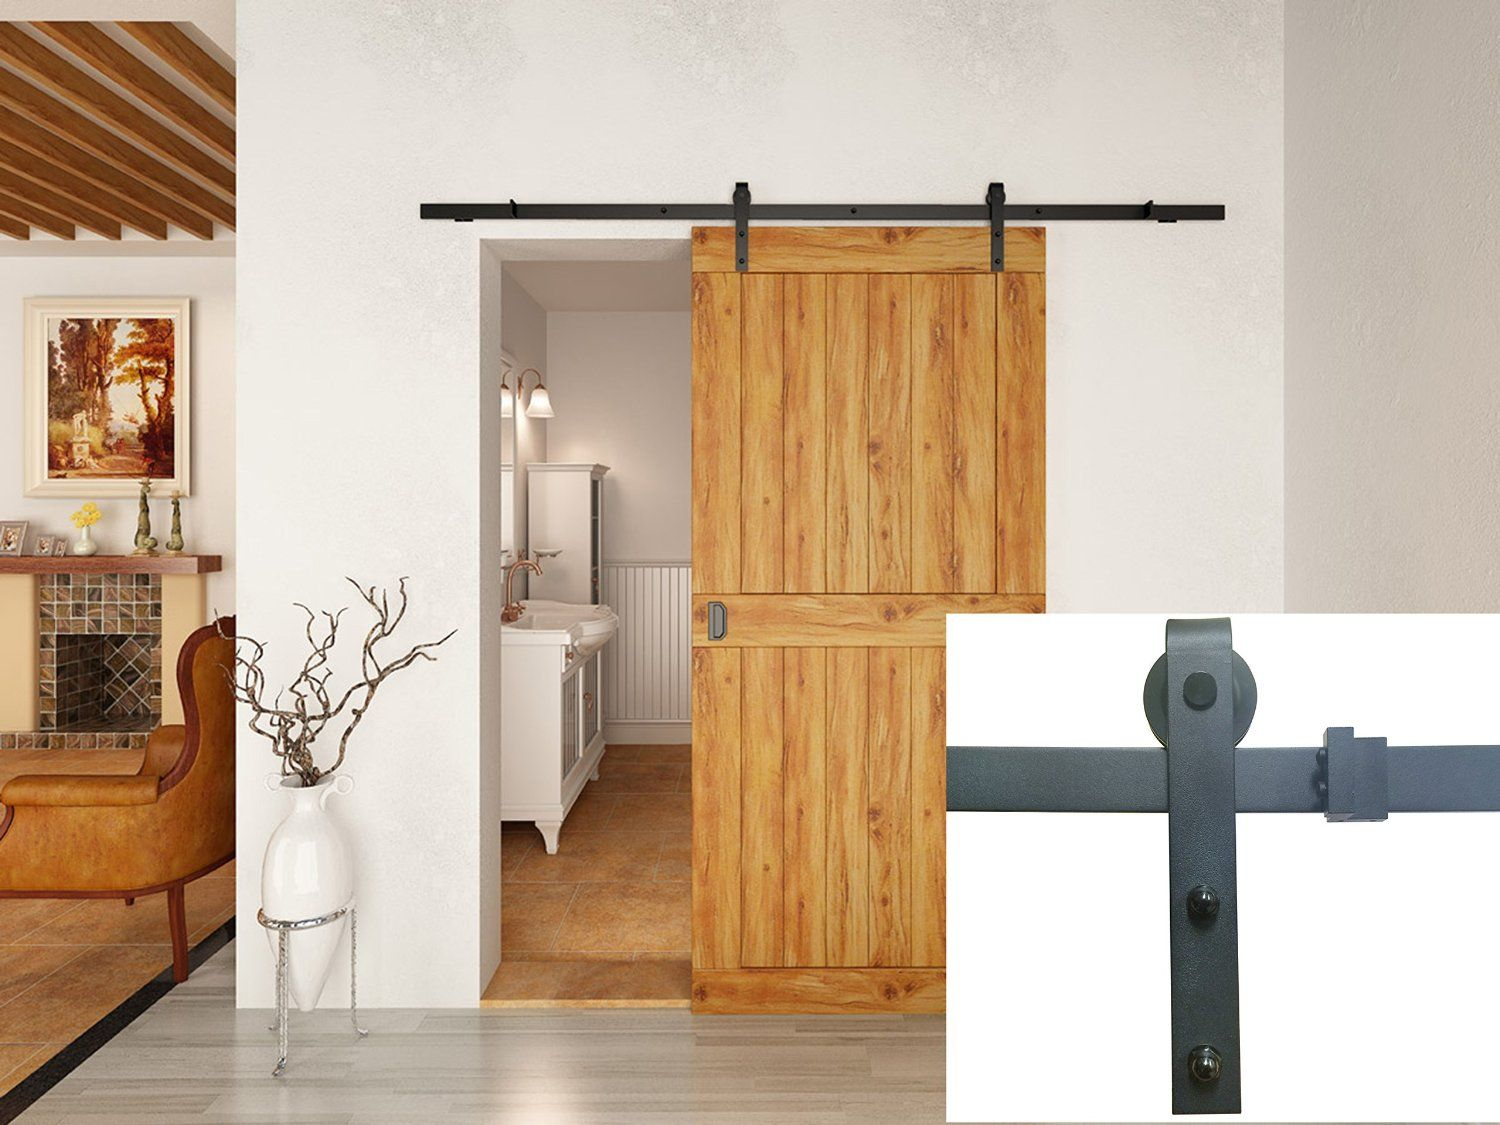 6 Foot Sliding Barn Door Hardware Kit Satin Nickle Tsq08 Doors Gates Commercial Bargains Inc Interior Barn Doors Barn Doors Sliding Barn Door